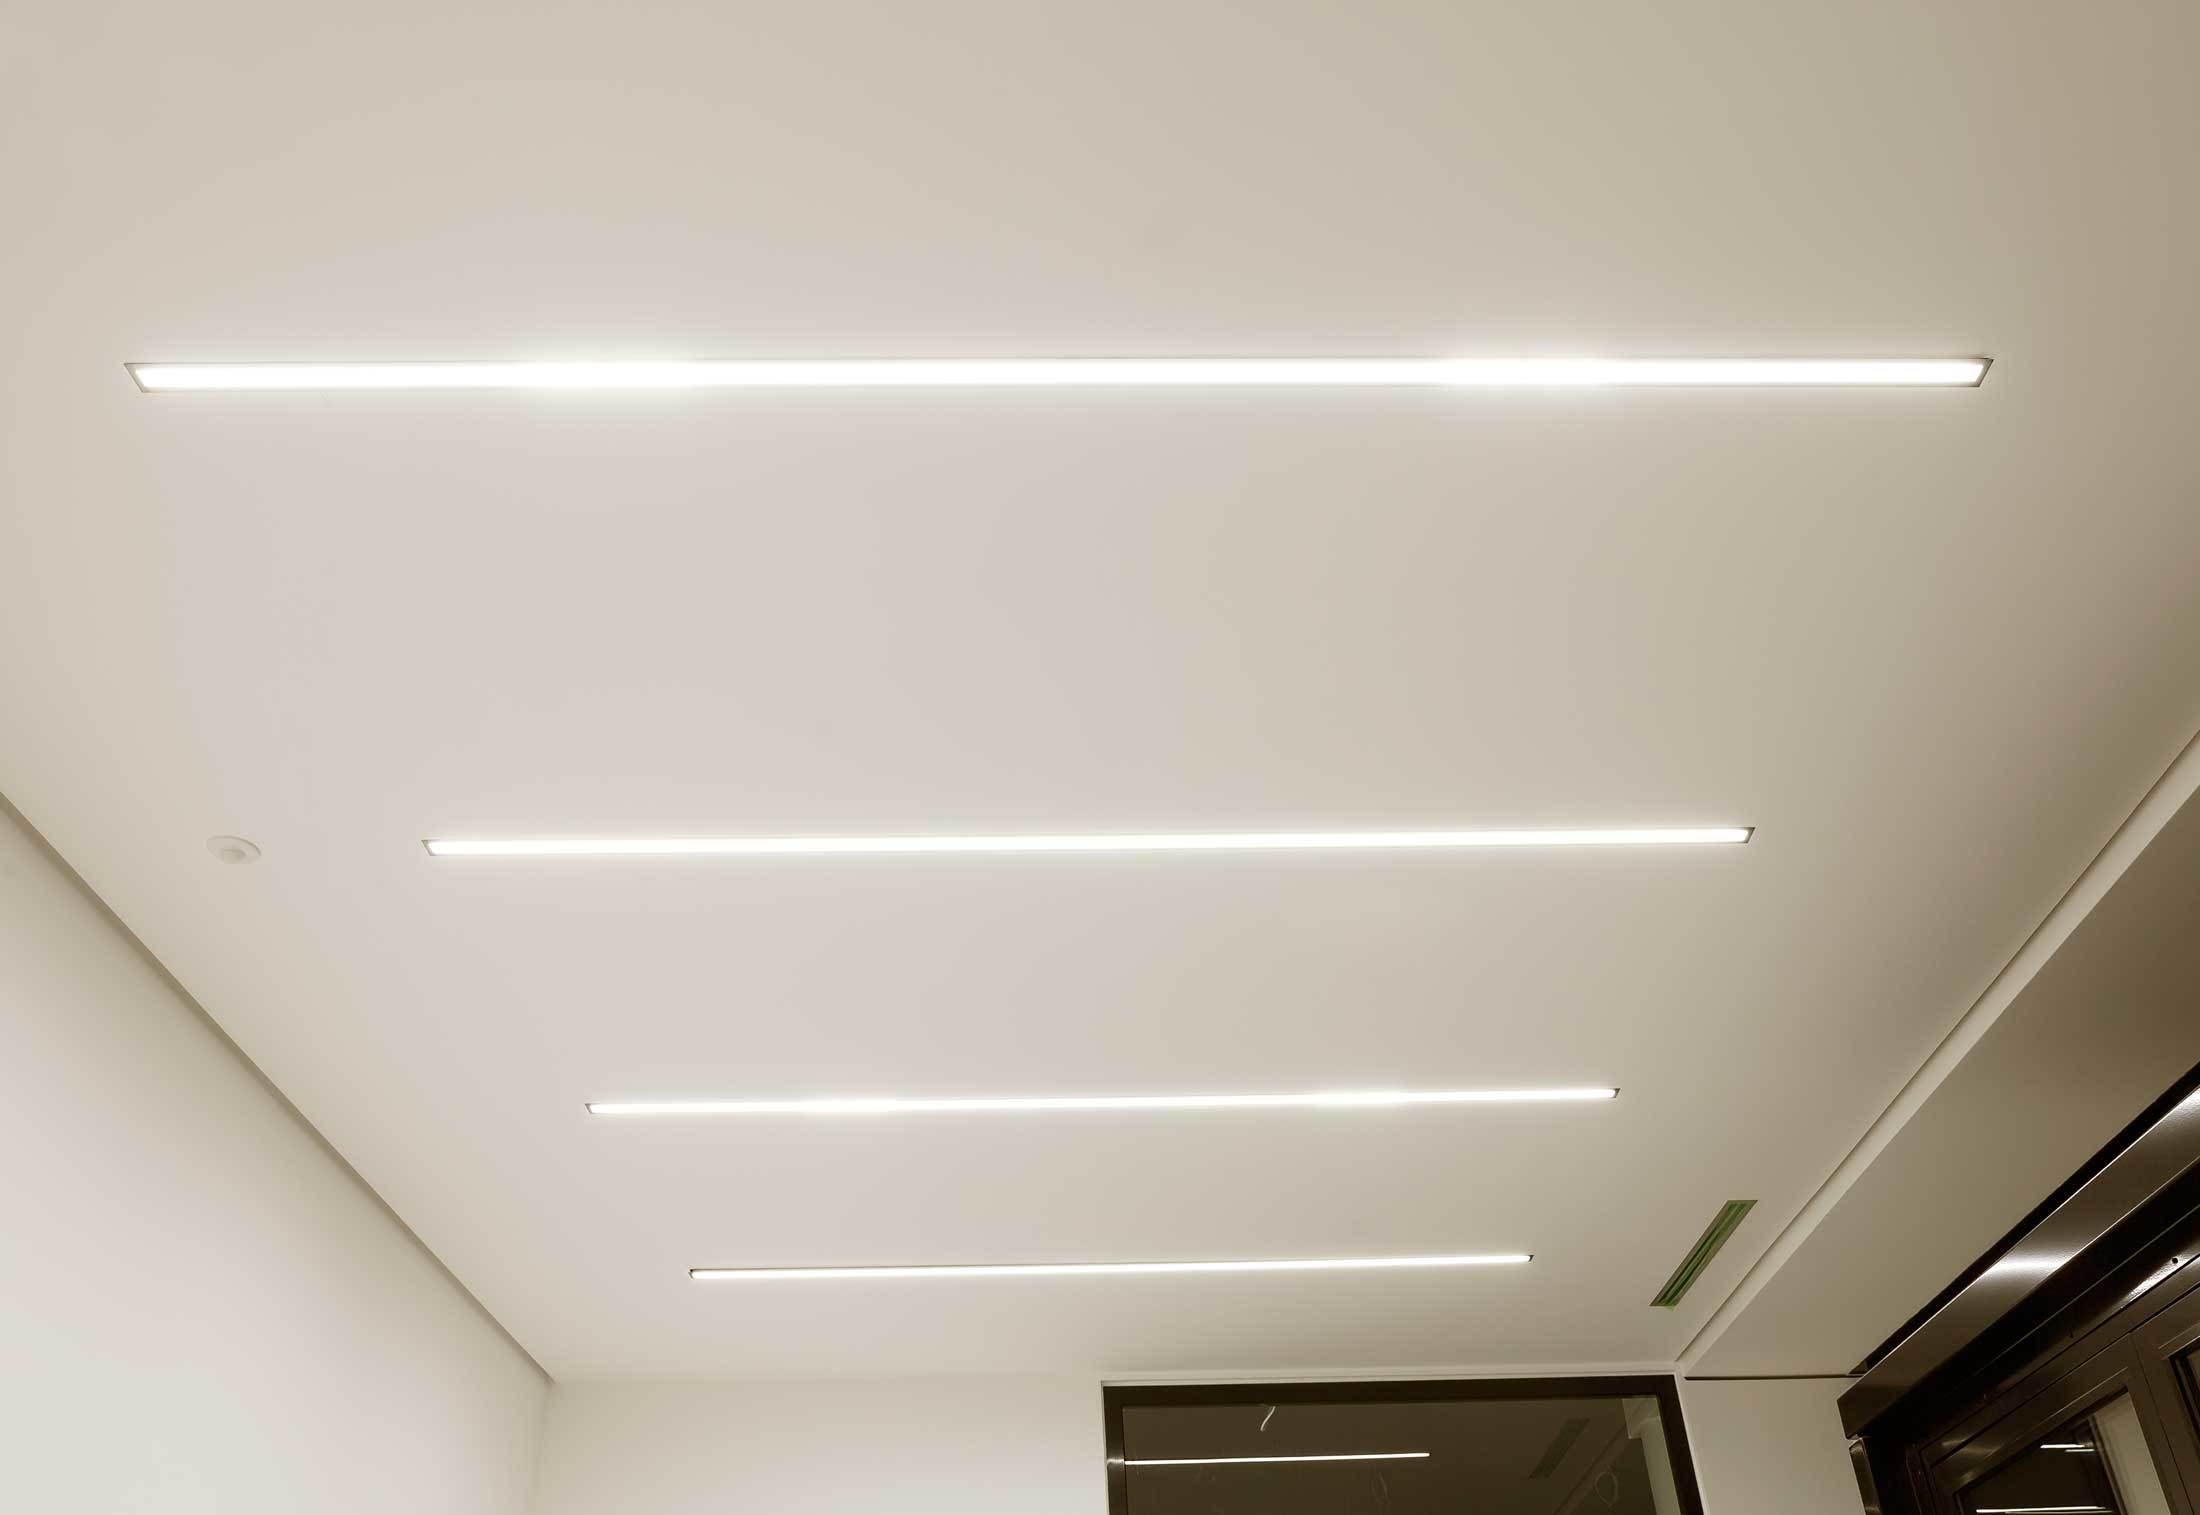 led linargo surface mounted luminaire by ado lights stylepark. Black Bedroom Furniture Sets. Home Design Ideas